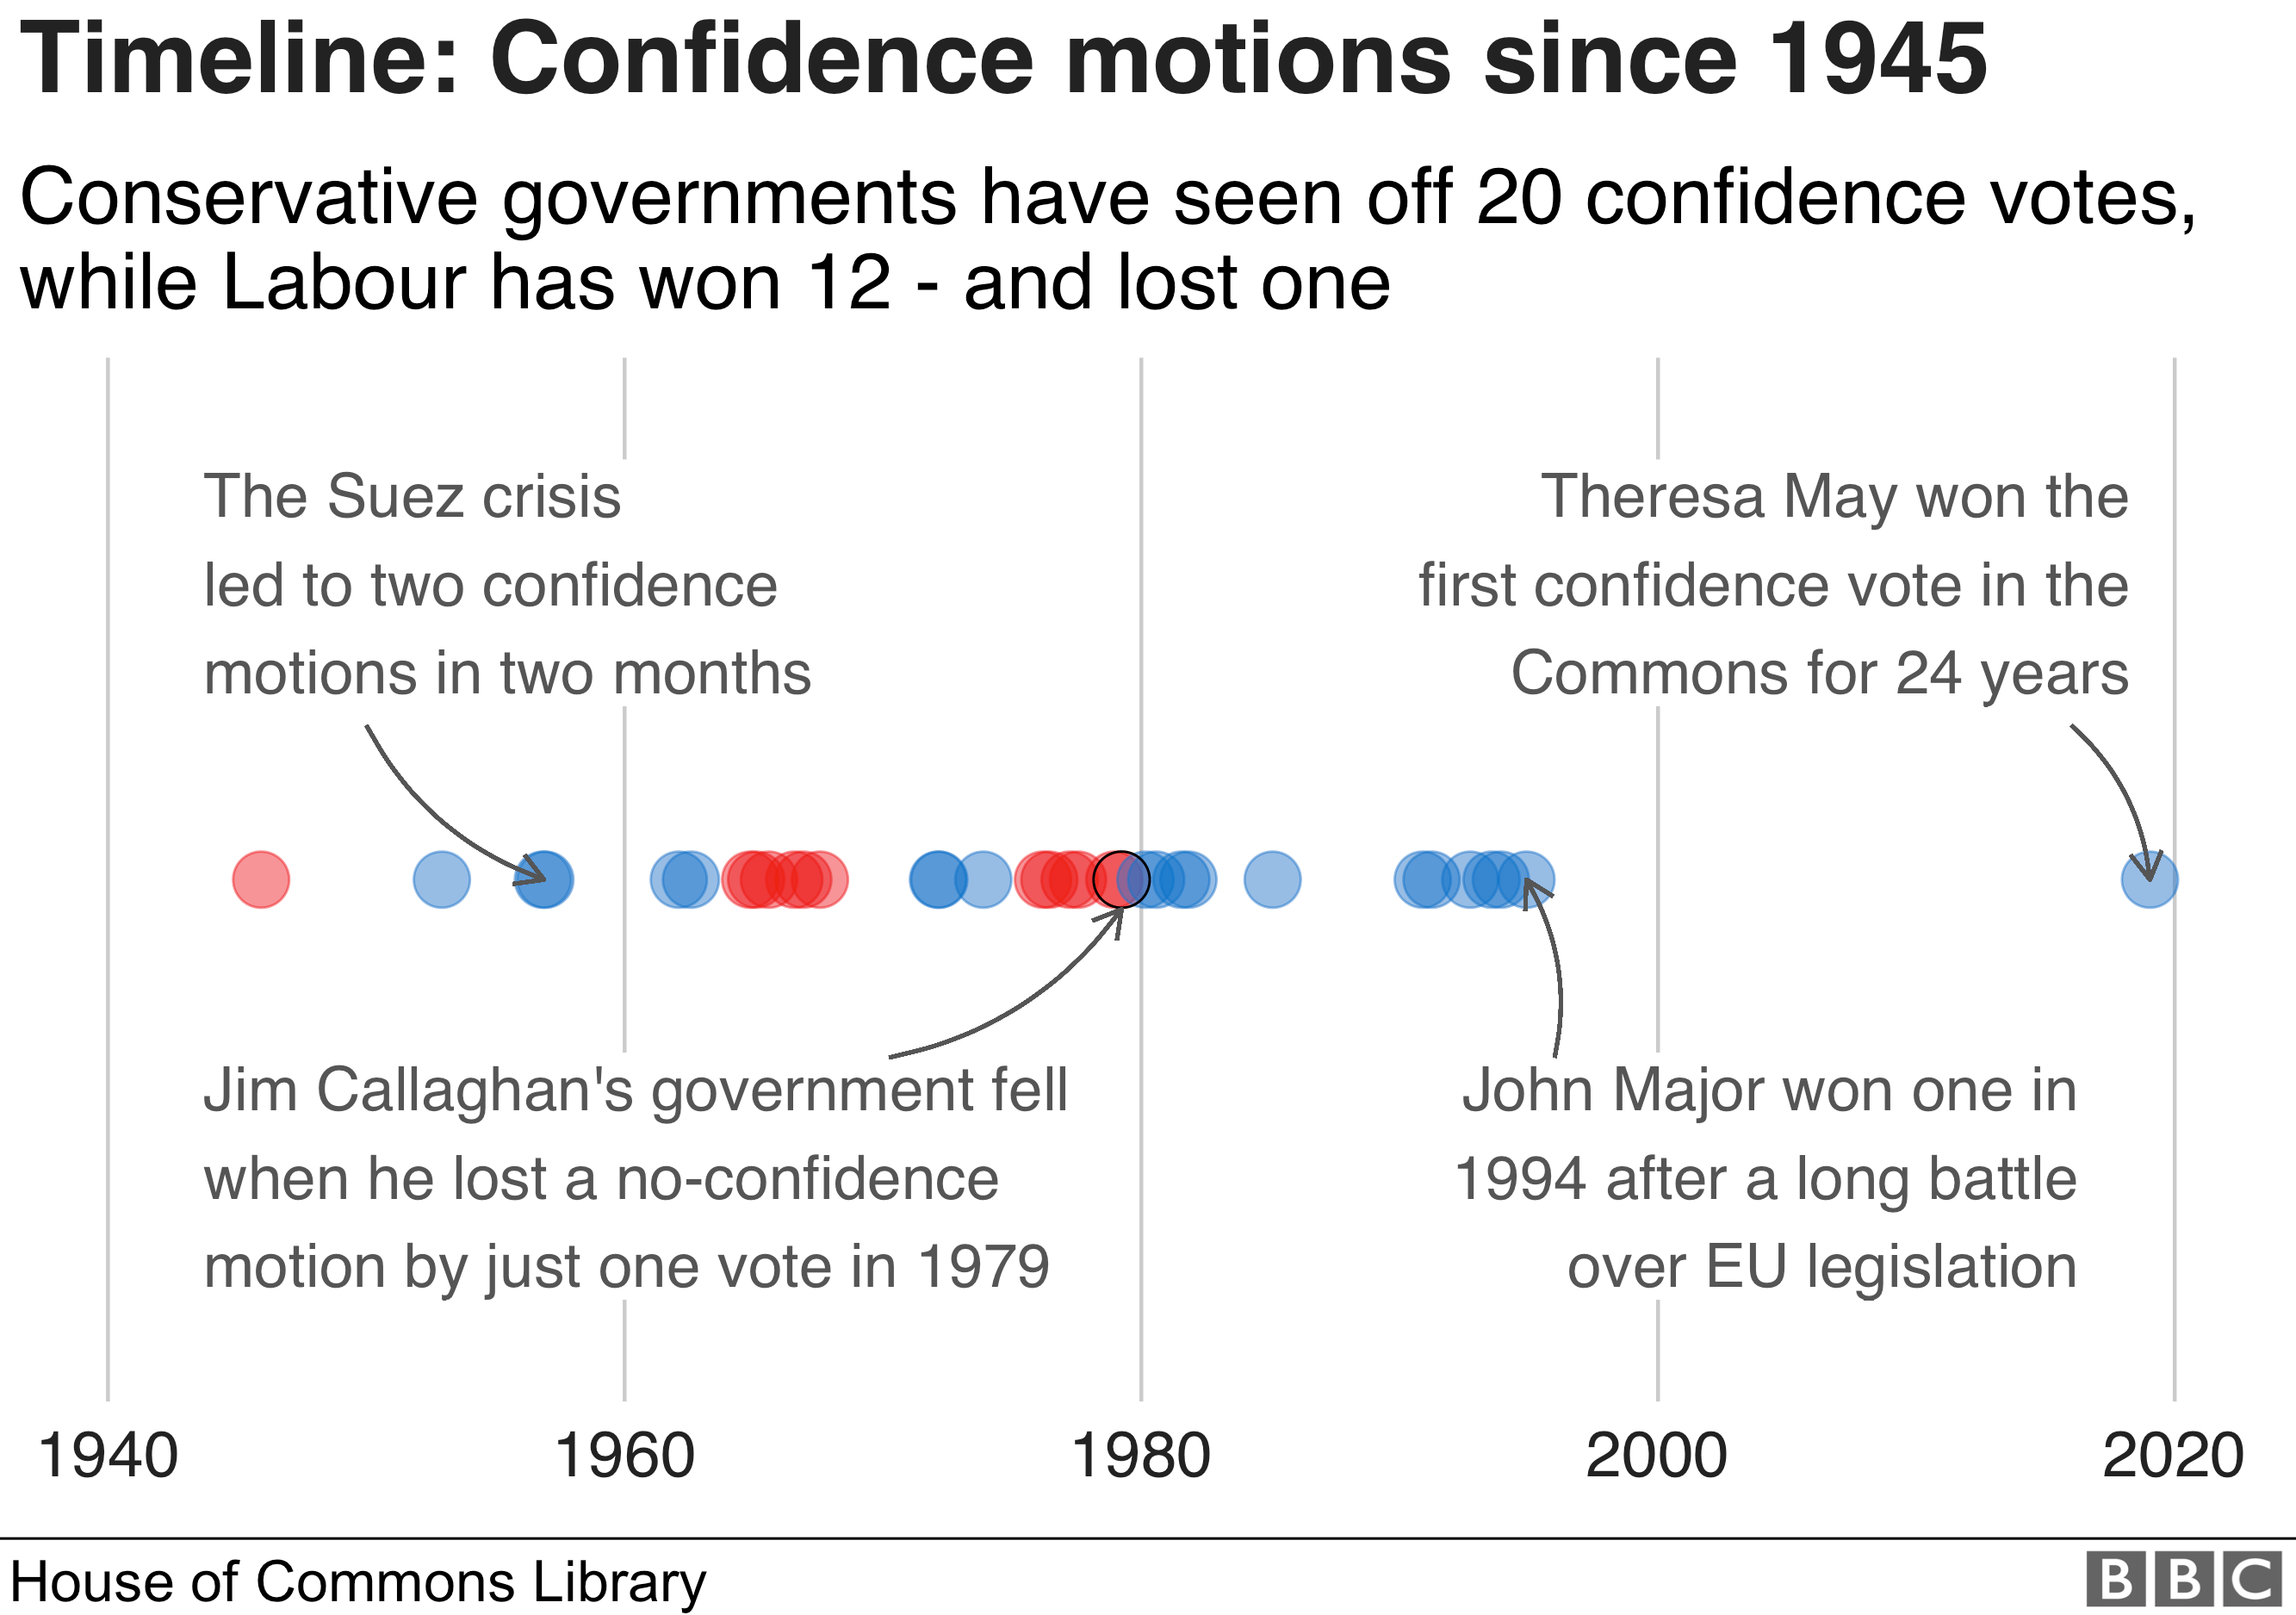 Timeline showing confidence motions since 1945